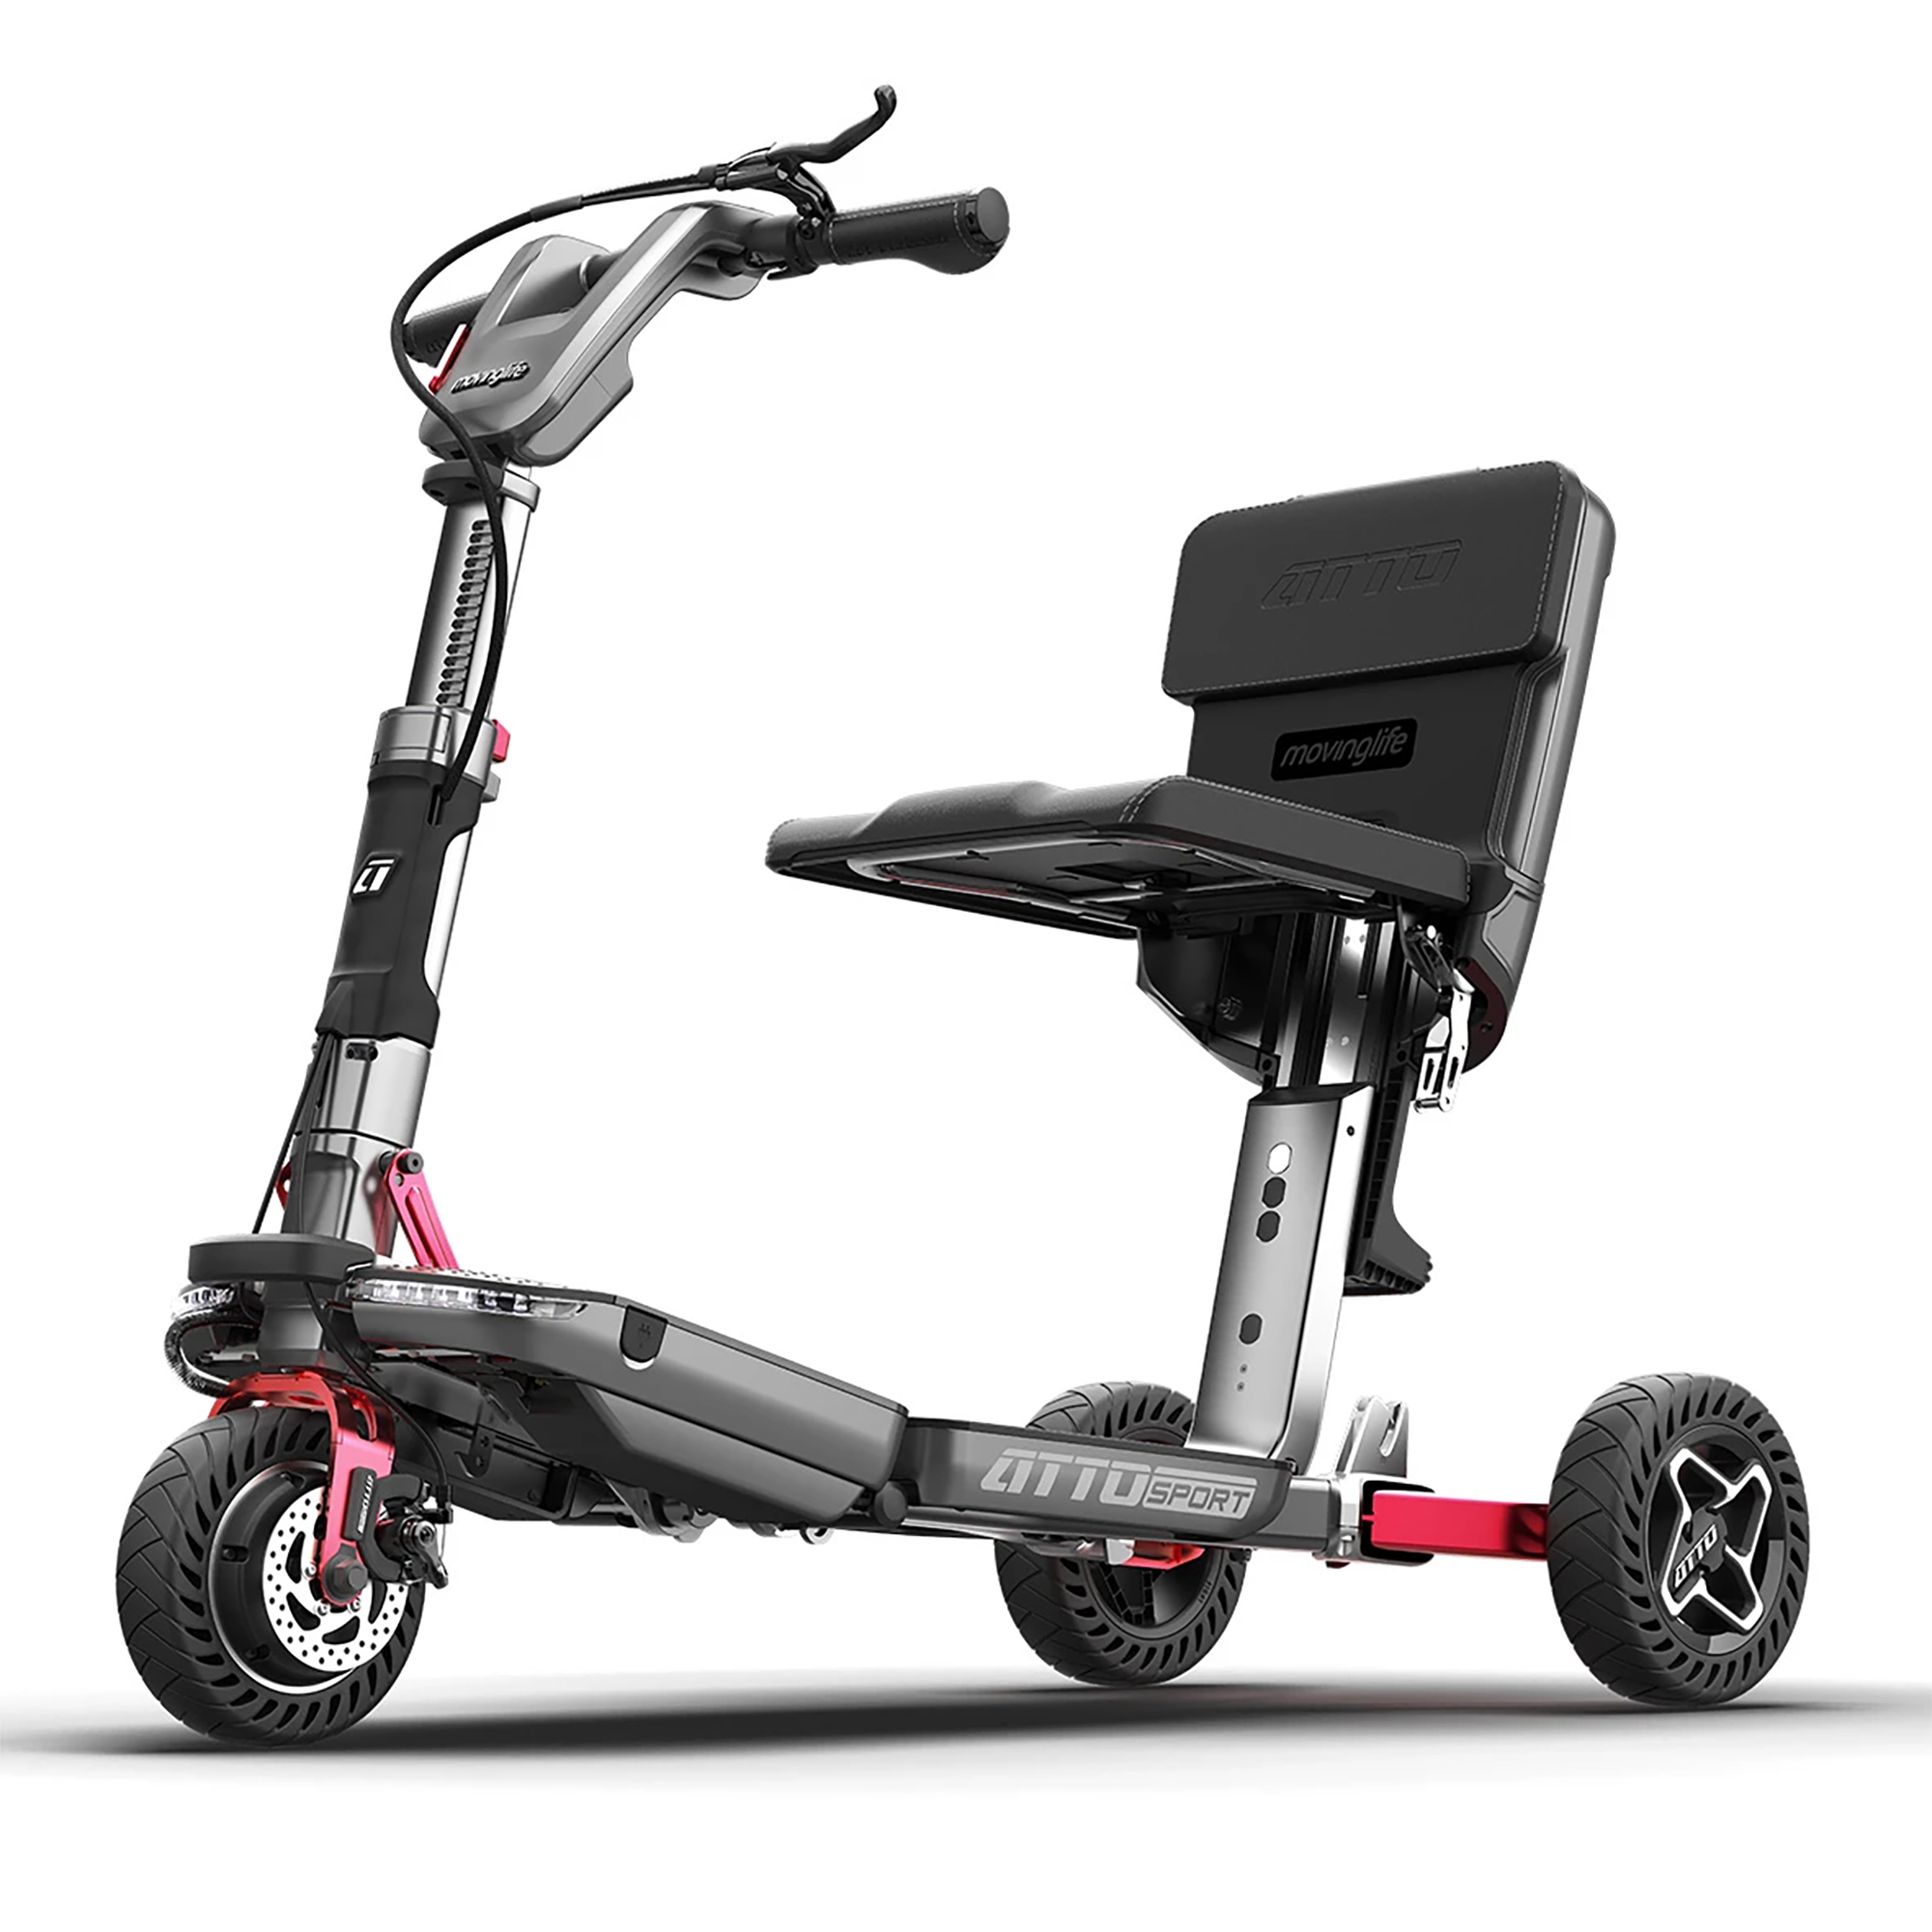 Atto Sport Mobility Scooter